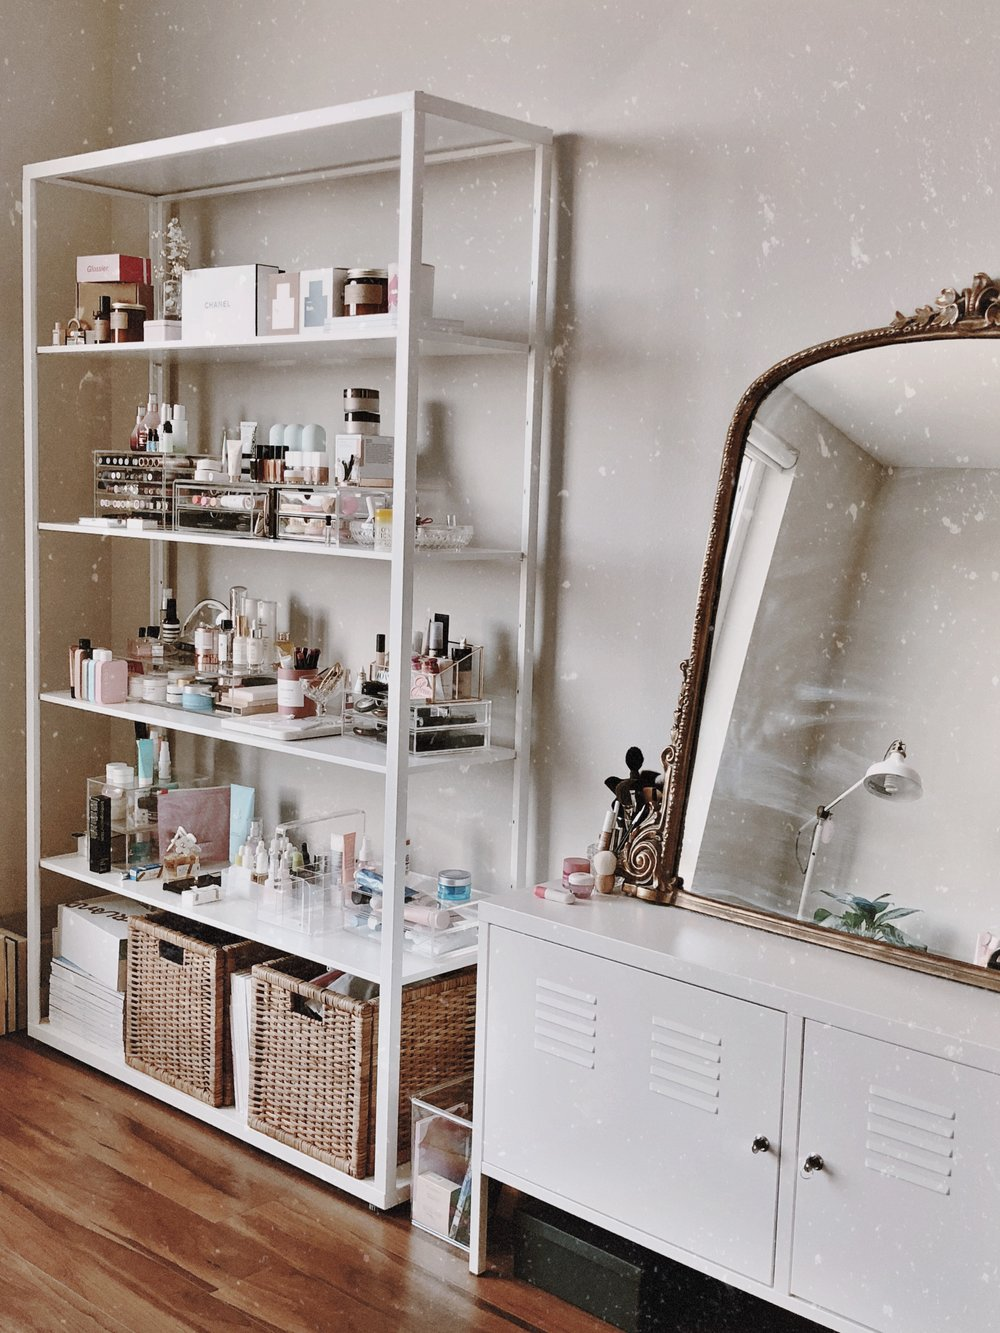 CHY Beauty Office Storage - Ikea, West Elm, The Container Store, Anthropologie